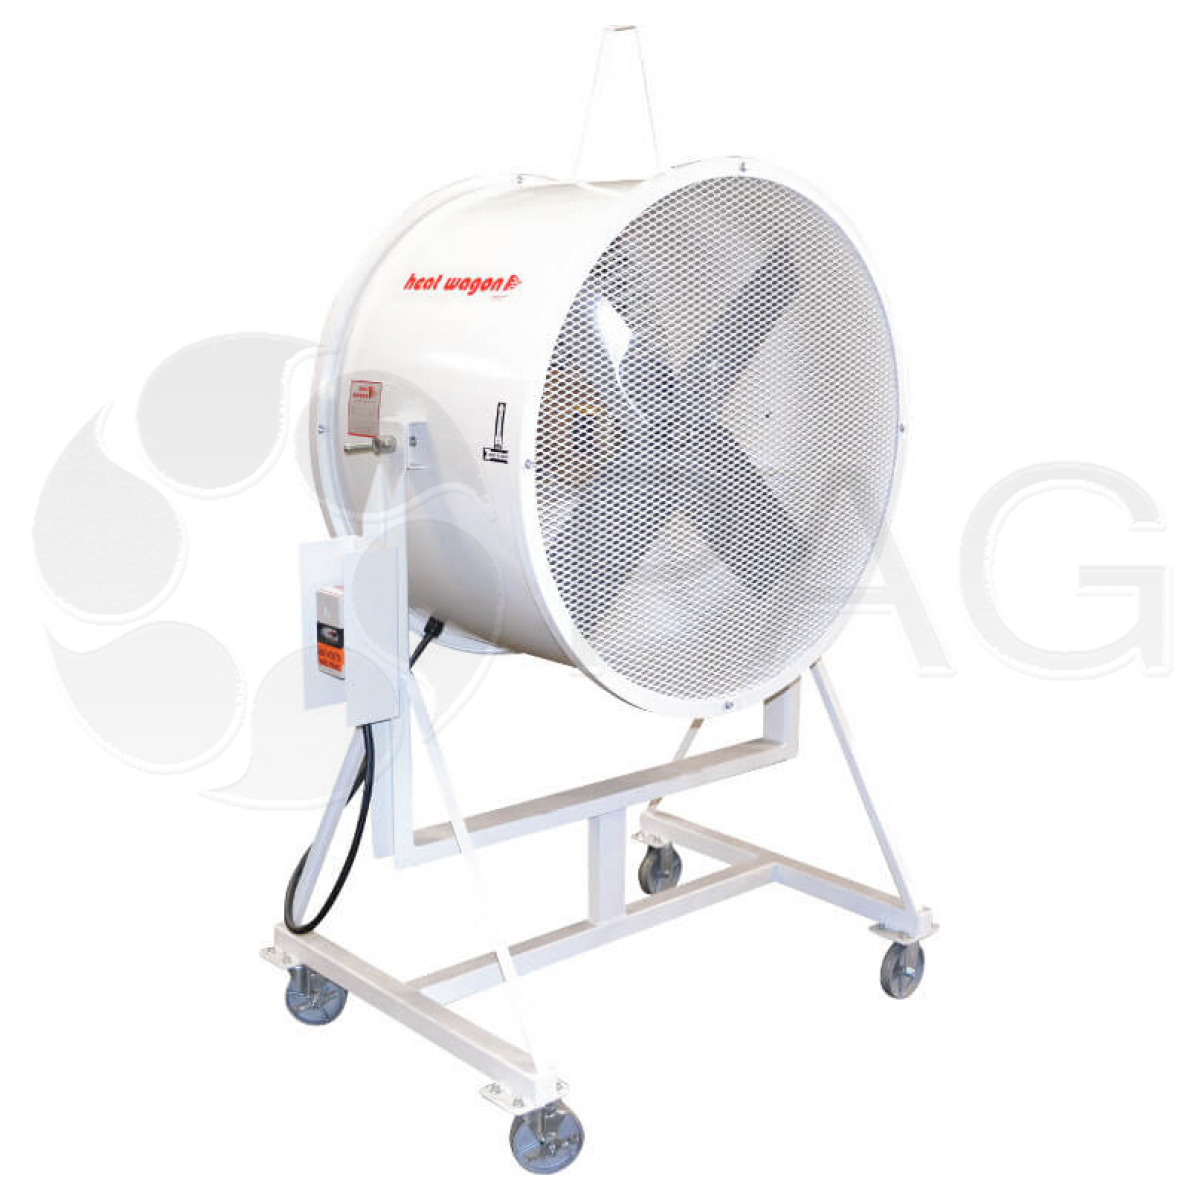 Heat Wagon I36 blower fan with specially-engineered propellers